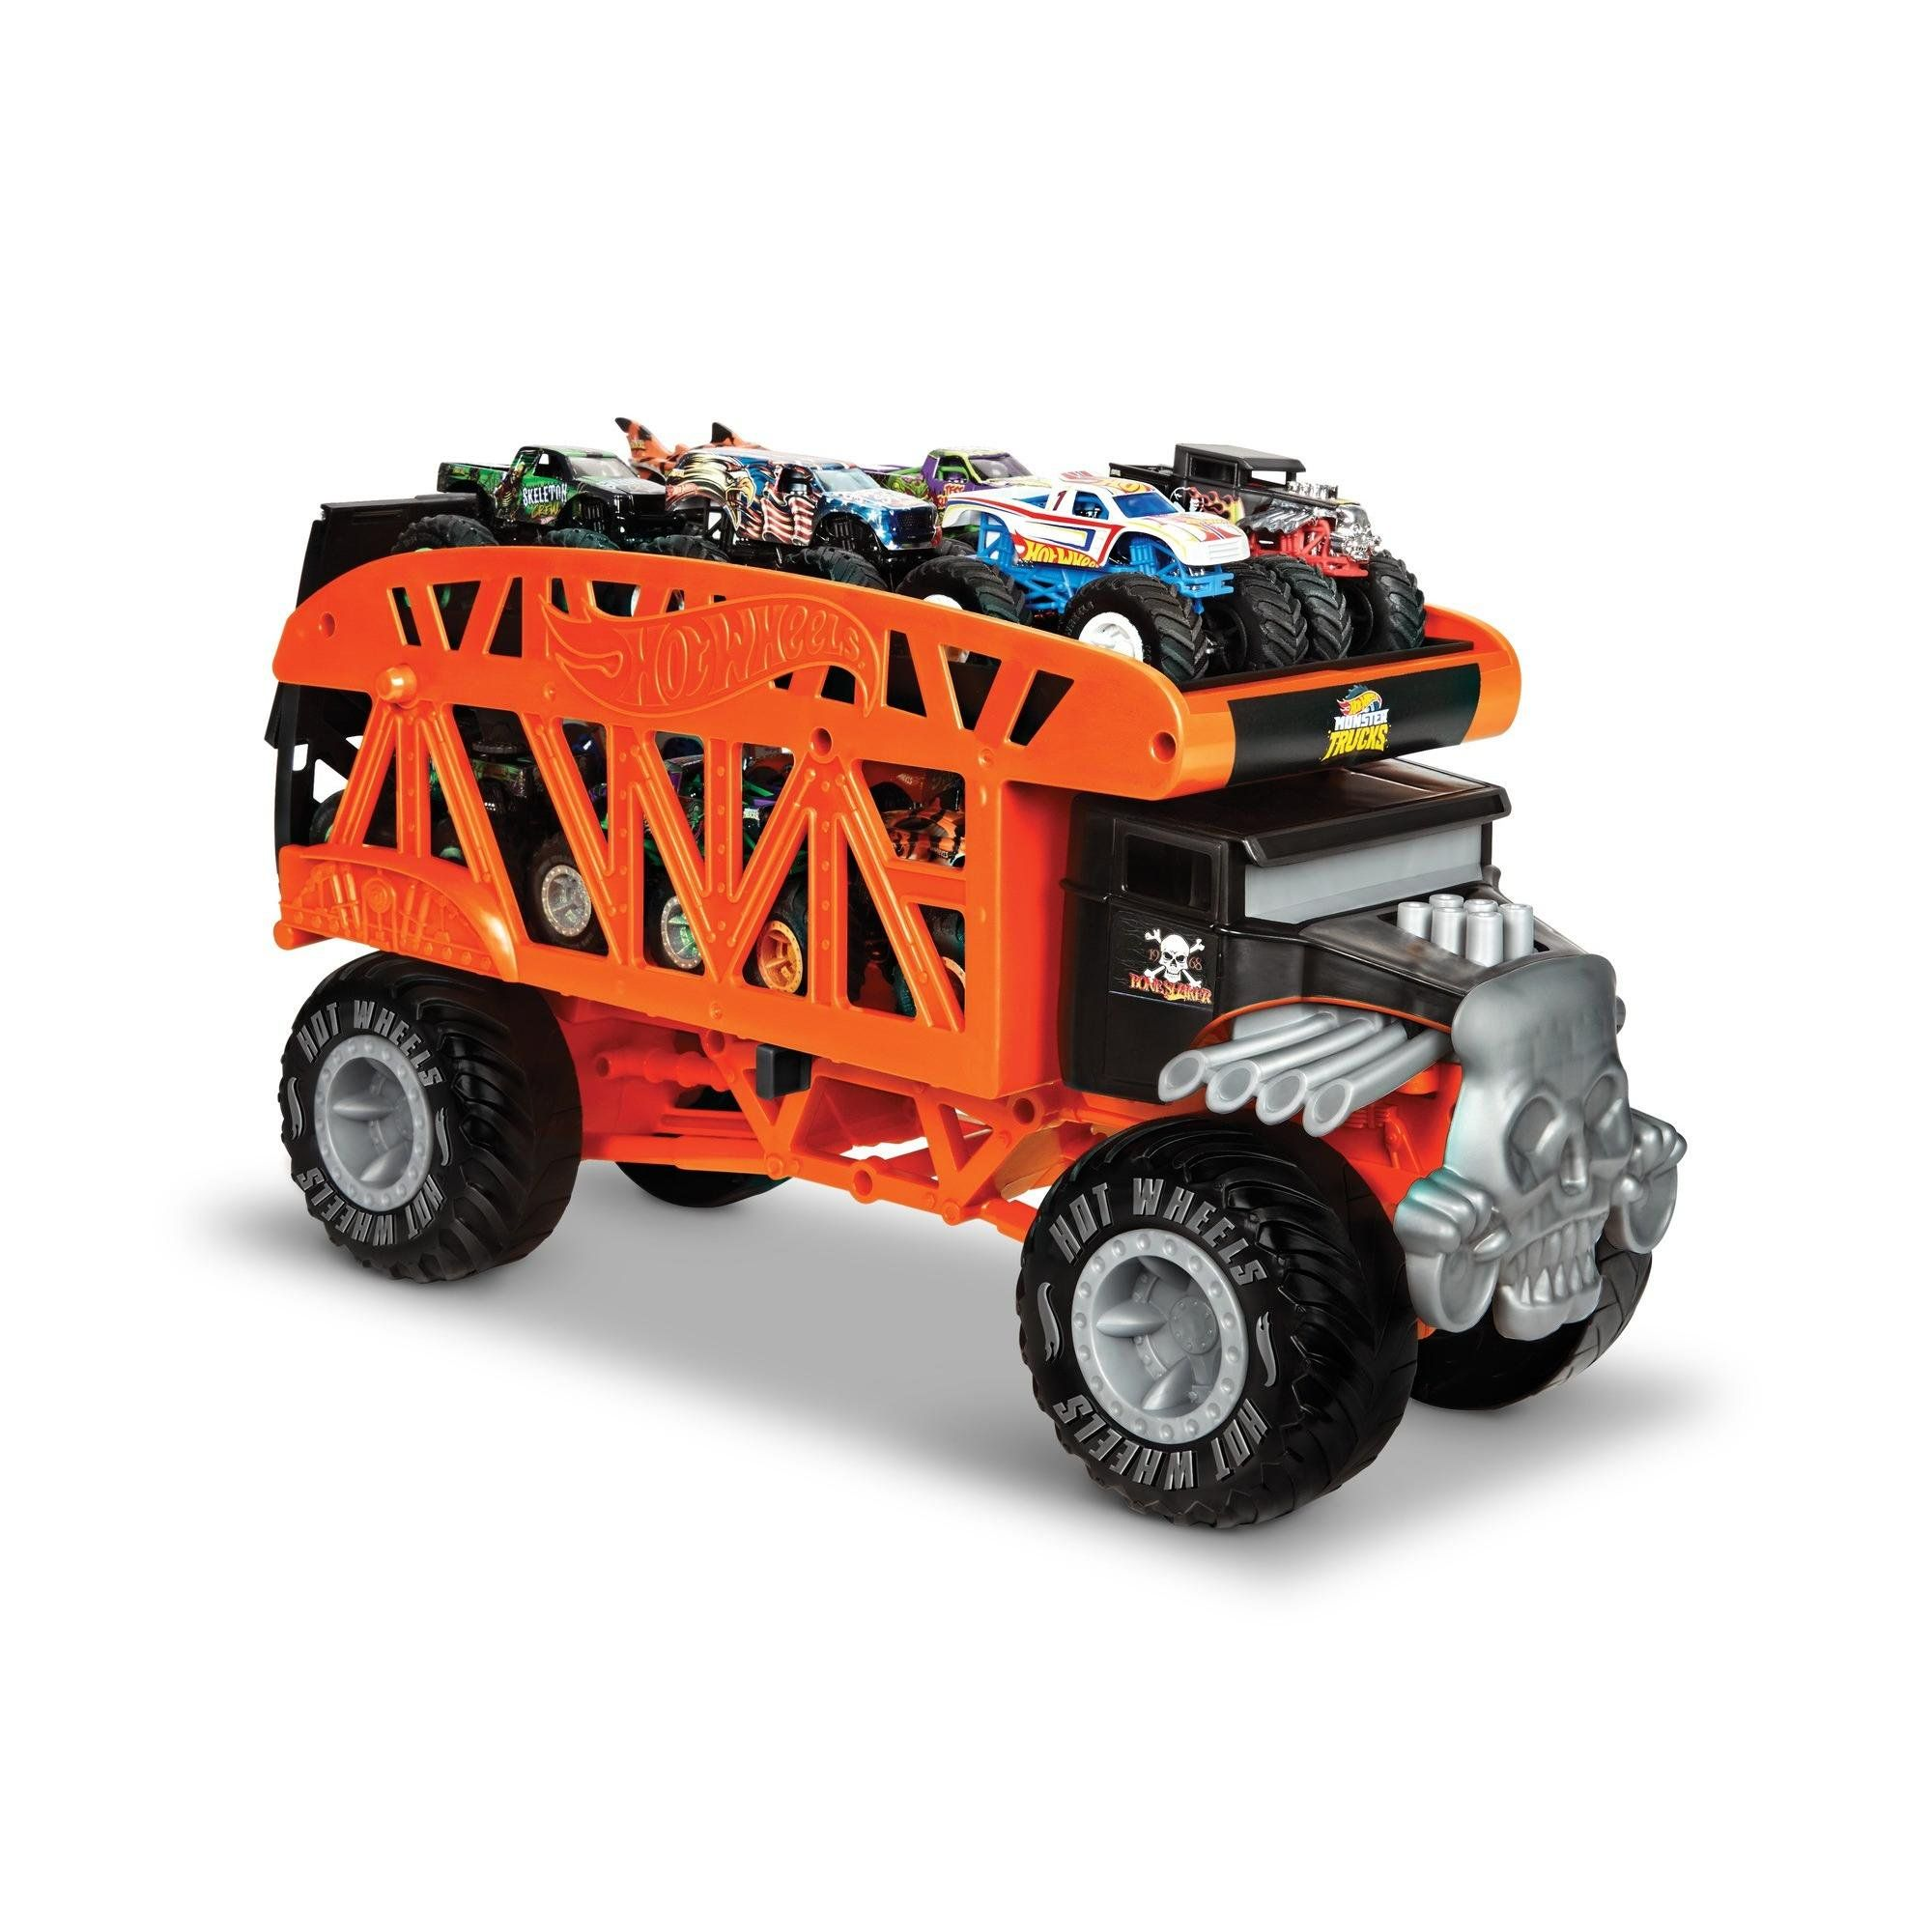 Hot Wheels Monster Trucks Monster Mover Walmart Com In 2021 Monster Trucks Monster Truck Toys Hot Wheels